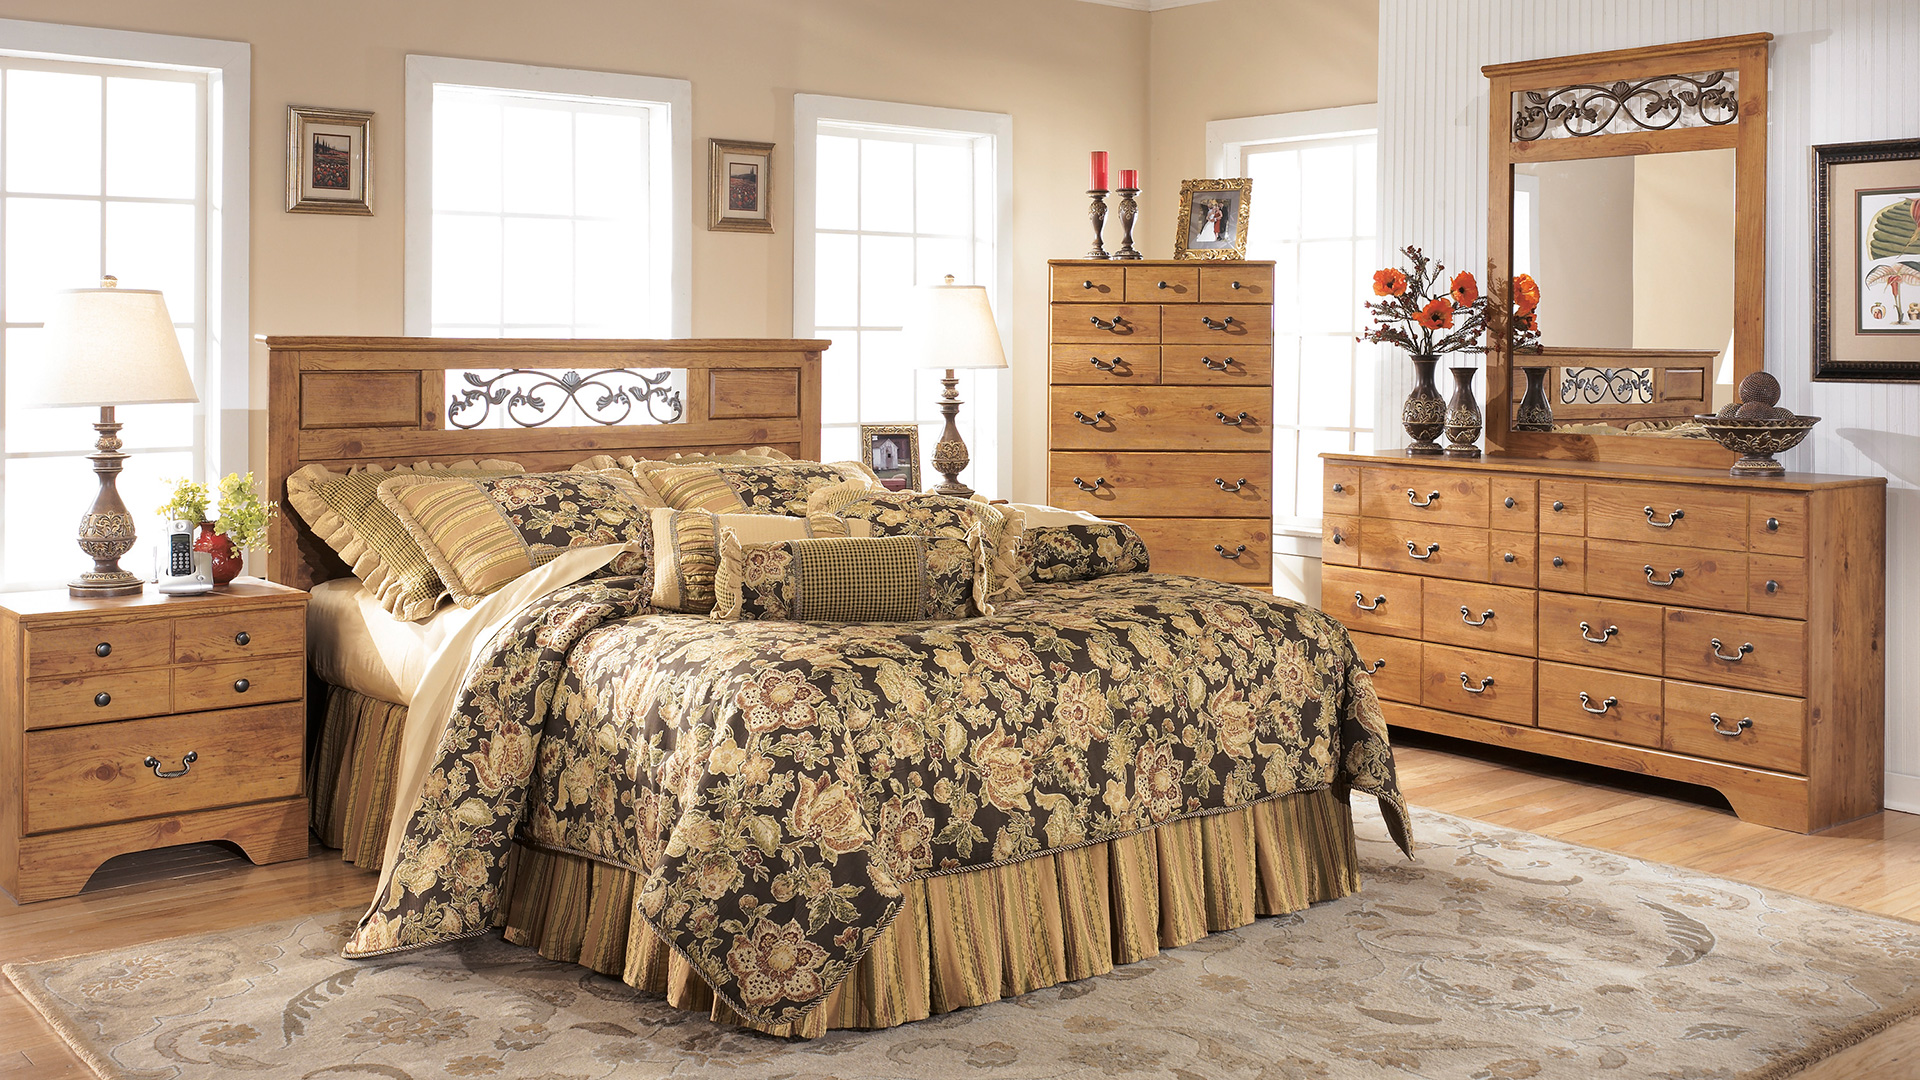 Economy Furniture packages | sherman furniture rental serving new york